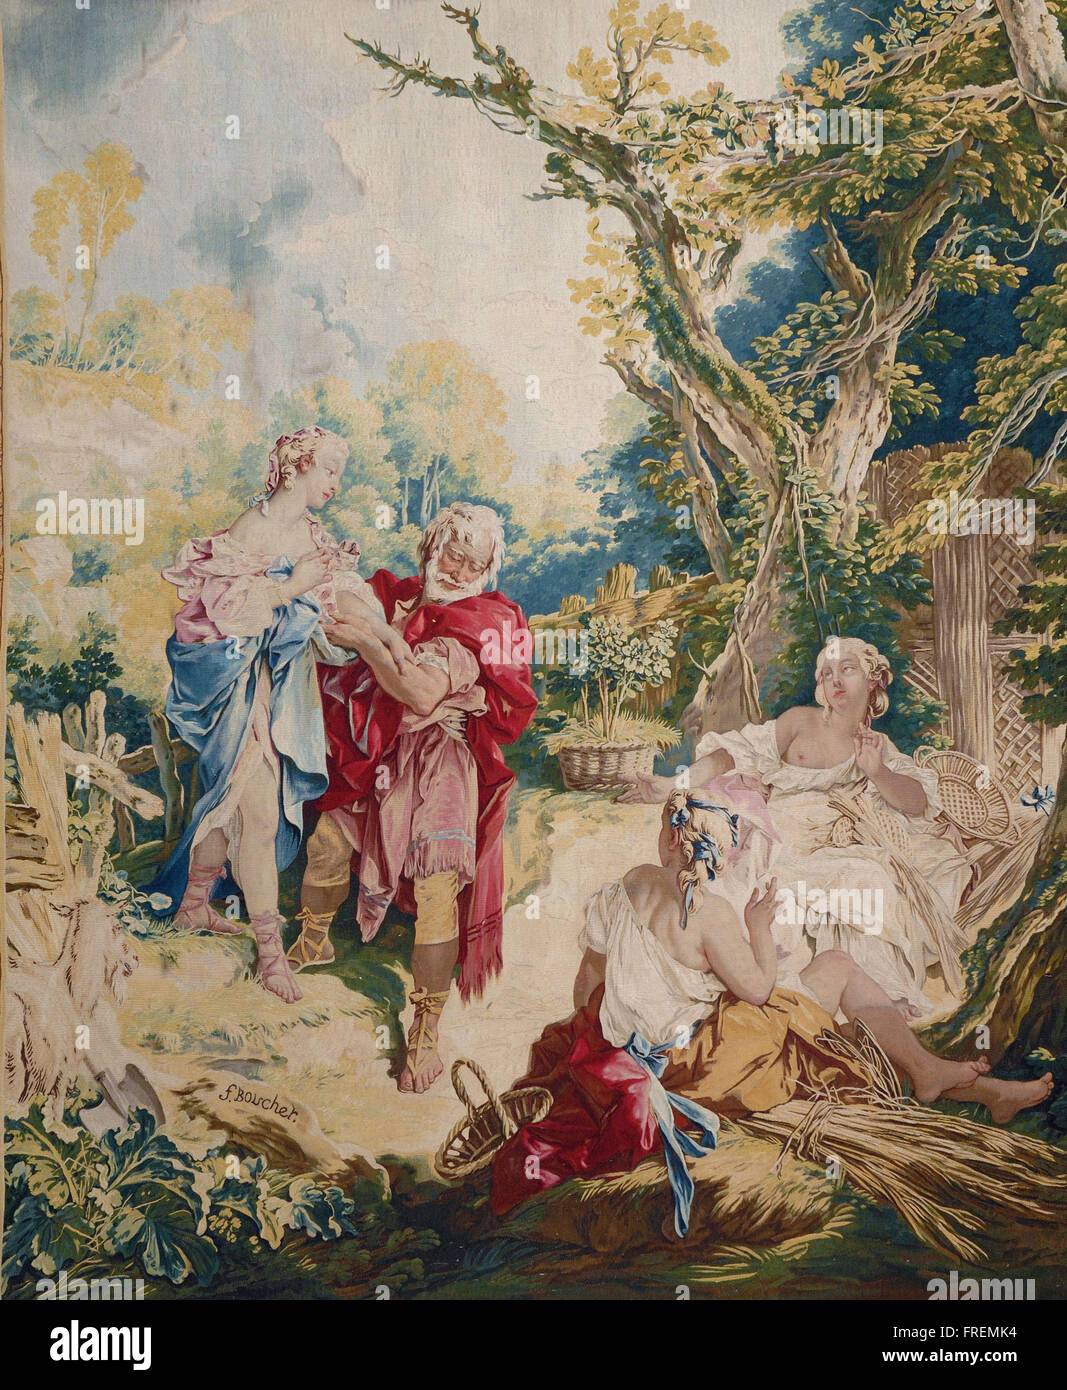 Designed by François Boucher, French - Tapestry showing Psyche and the Basketmaker - Stock Image